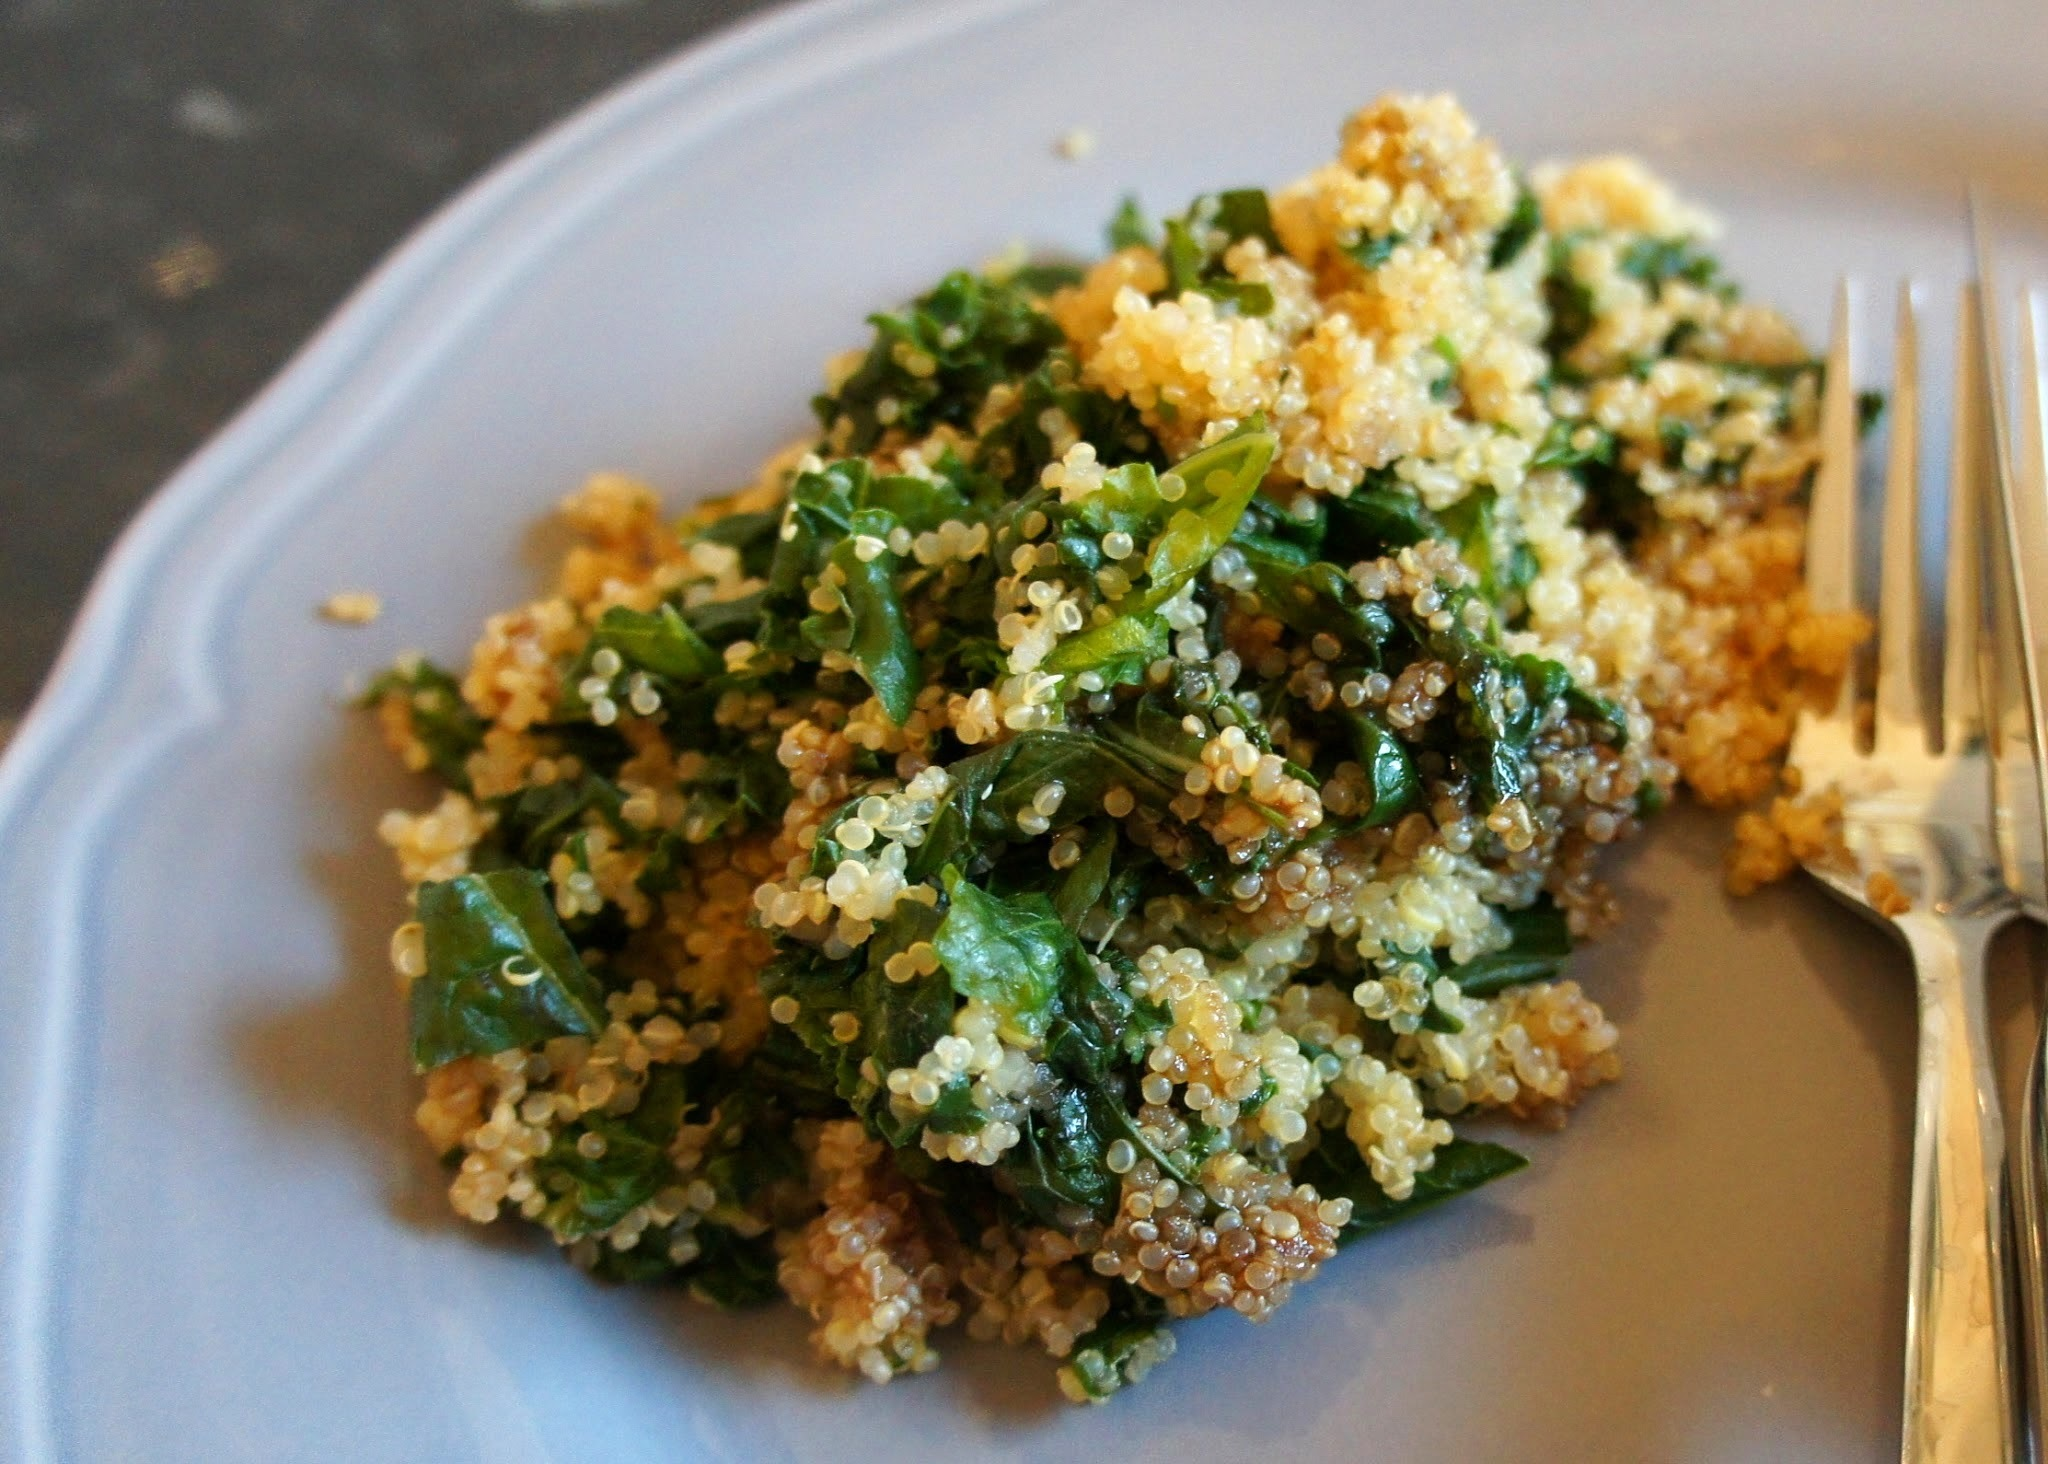 Quick and easy side dishes: Fig balsamic kale quinoa, and spicy peanut tofu and broccoli